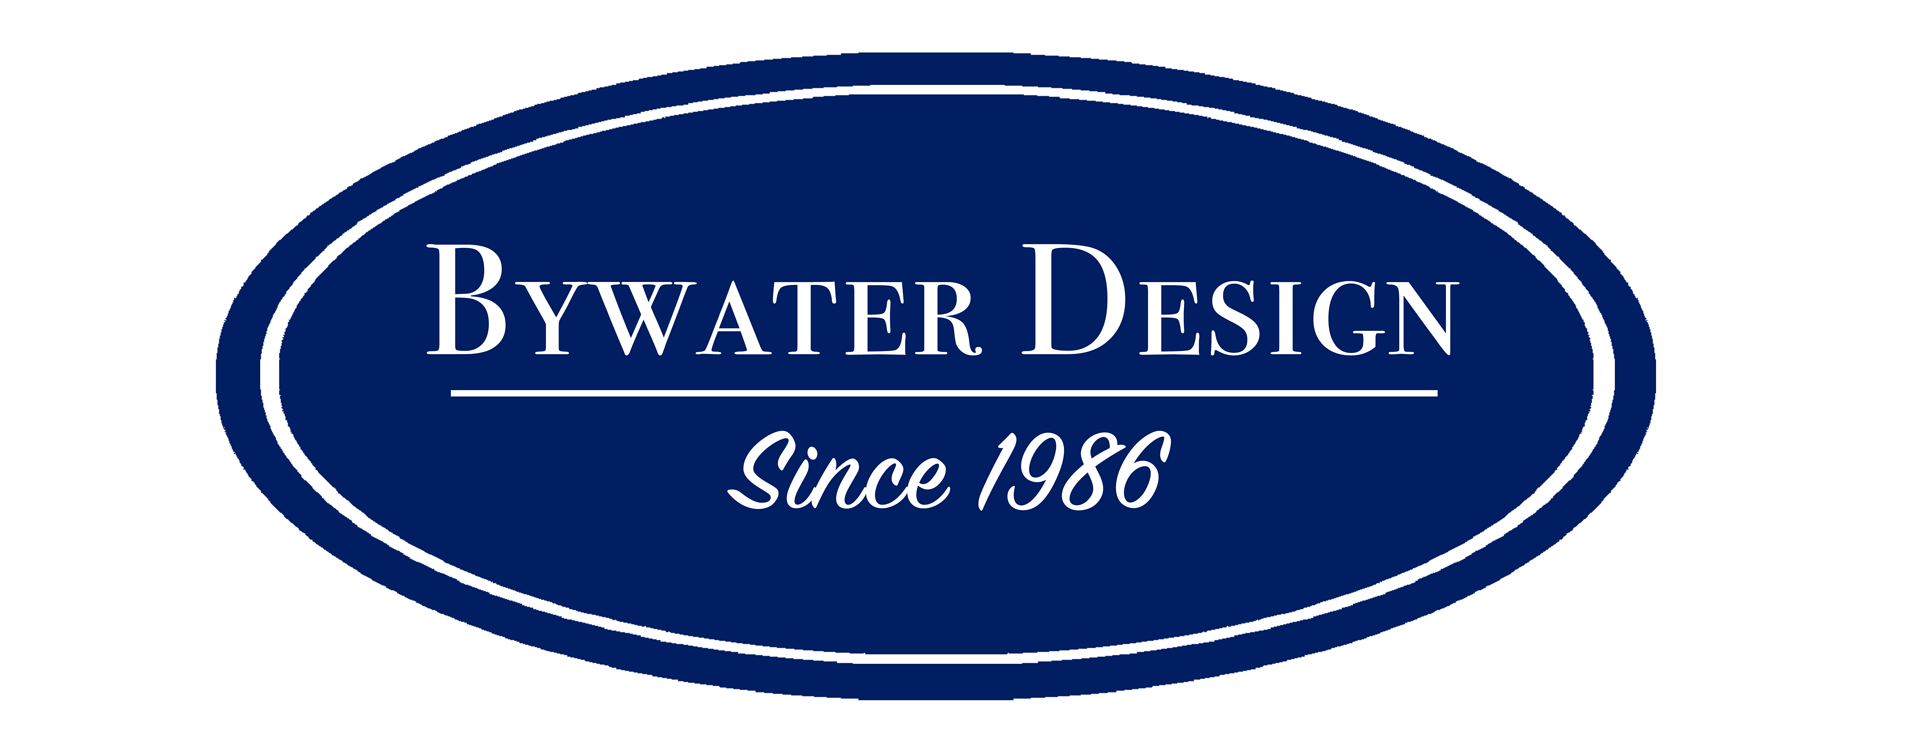 Bywater-Design_website-logo-web.png